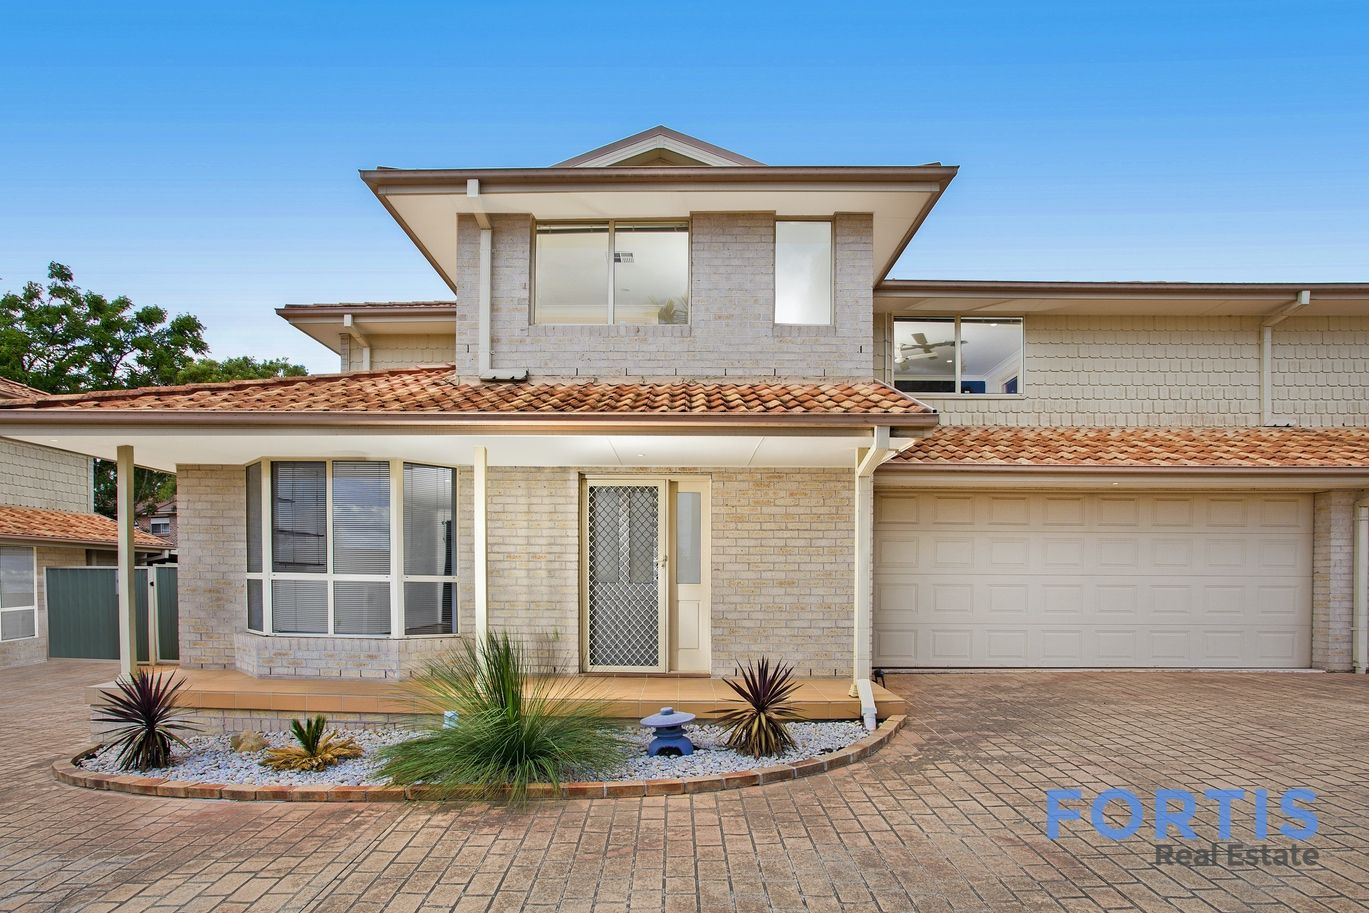 2/79 Stafford Street, Kingswood NSW 2747, Image 0